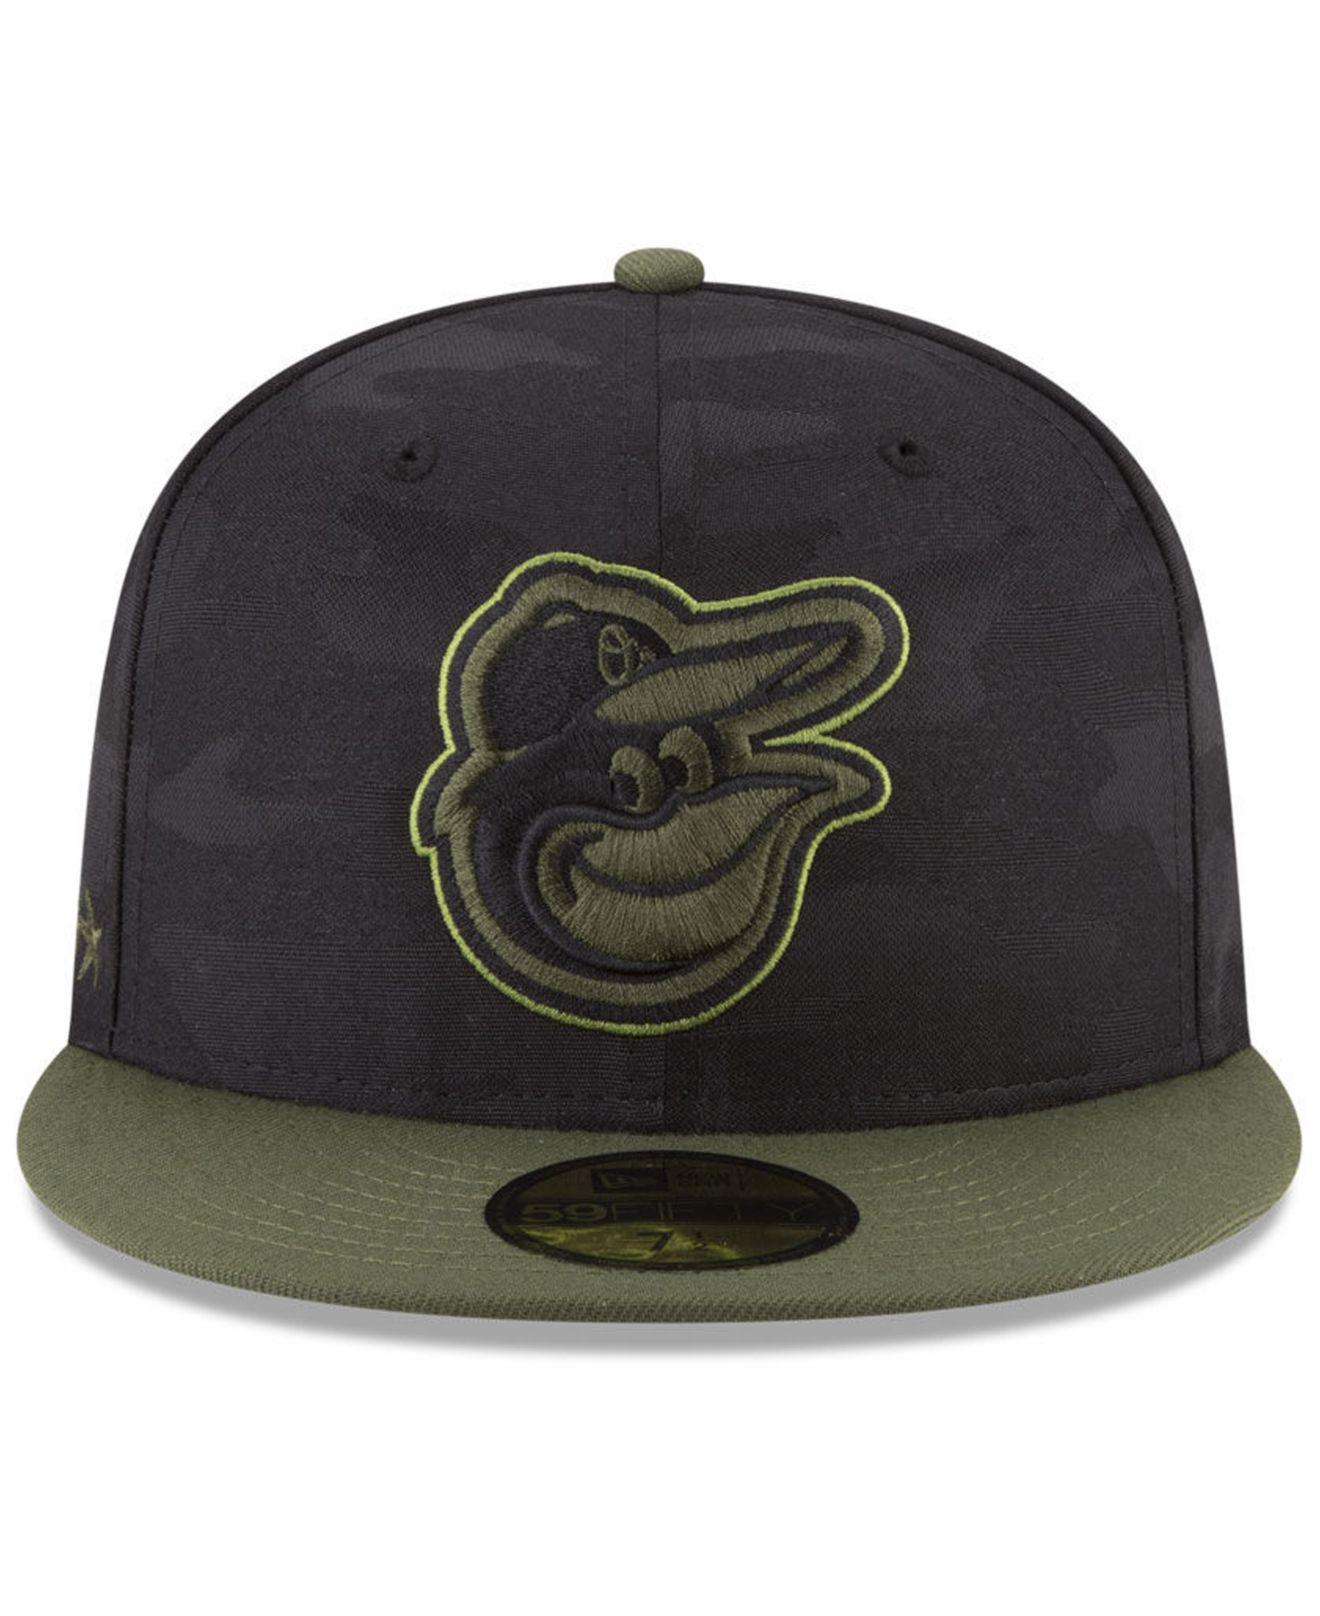 efa683e4 ... get lyst ktz baltimore orioles memorial day 59fifty fitted cap in black  for men 75b4f 59fc8